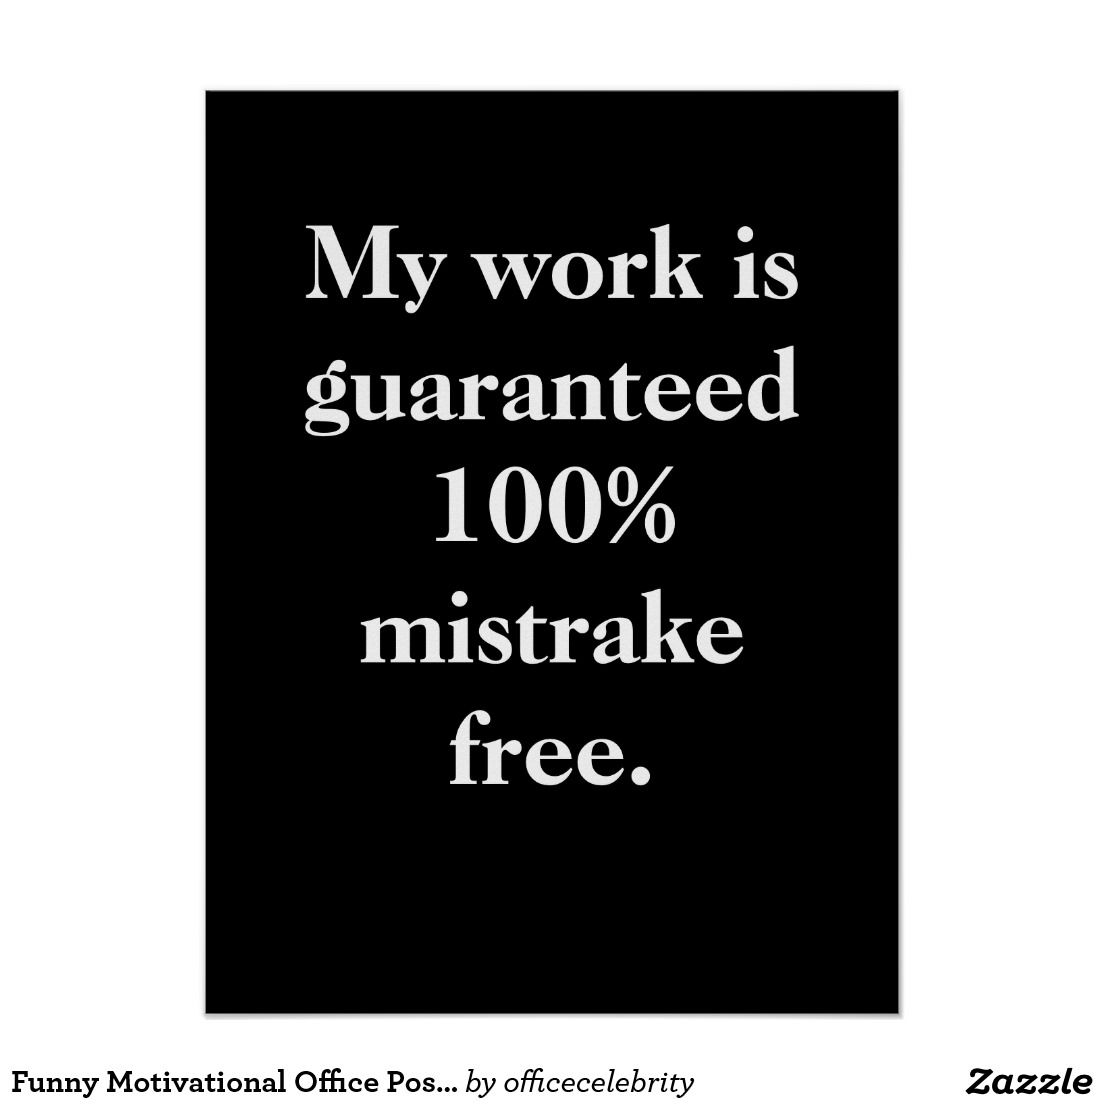 Funny Motivational Office Poster Zazzle Com Office Quotes Funny Work Quotes Funny Funny Motivational Quotes